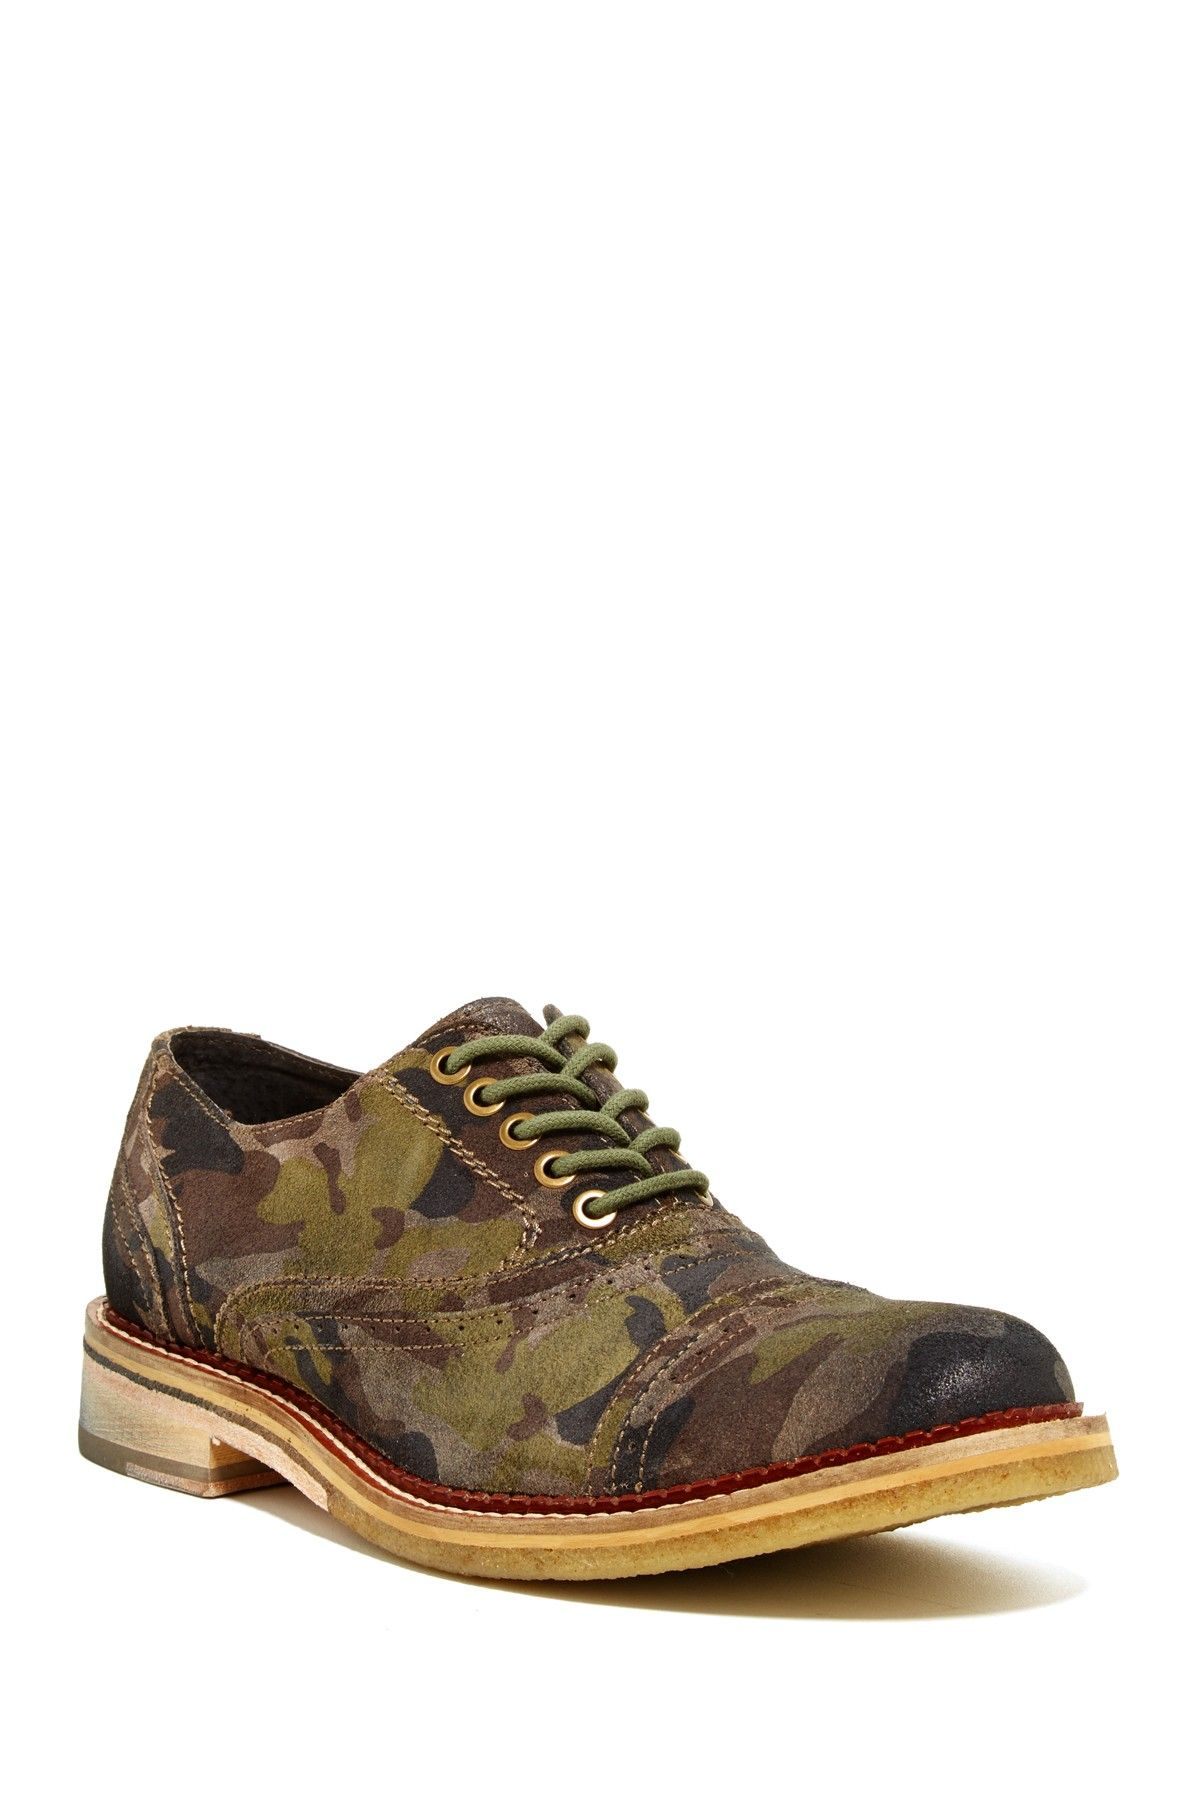 Crepe Along Camo Oxford by Kenneth Cole